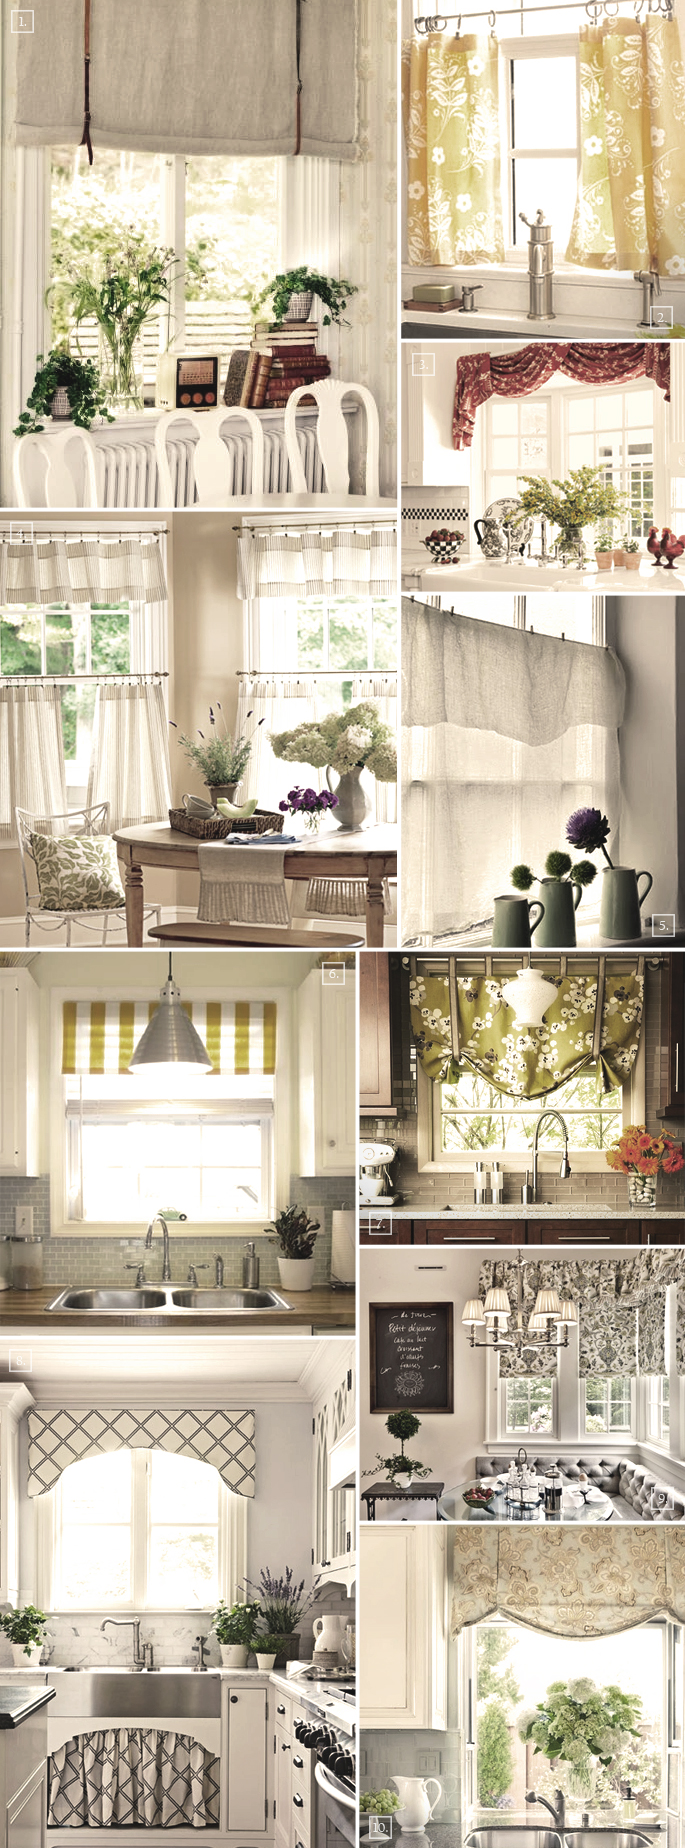 Curtain Designs Ideas: Decorating The Windows With These Kitchen Curtain Ideas